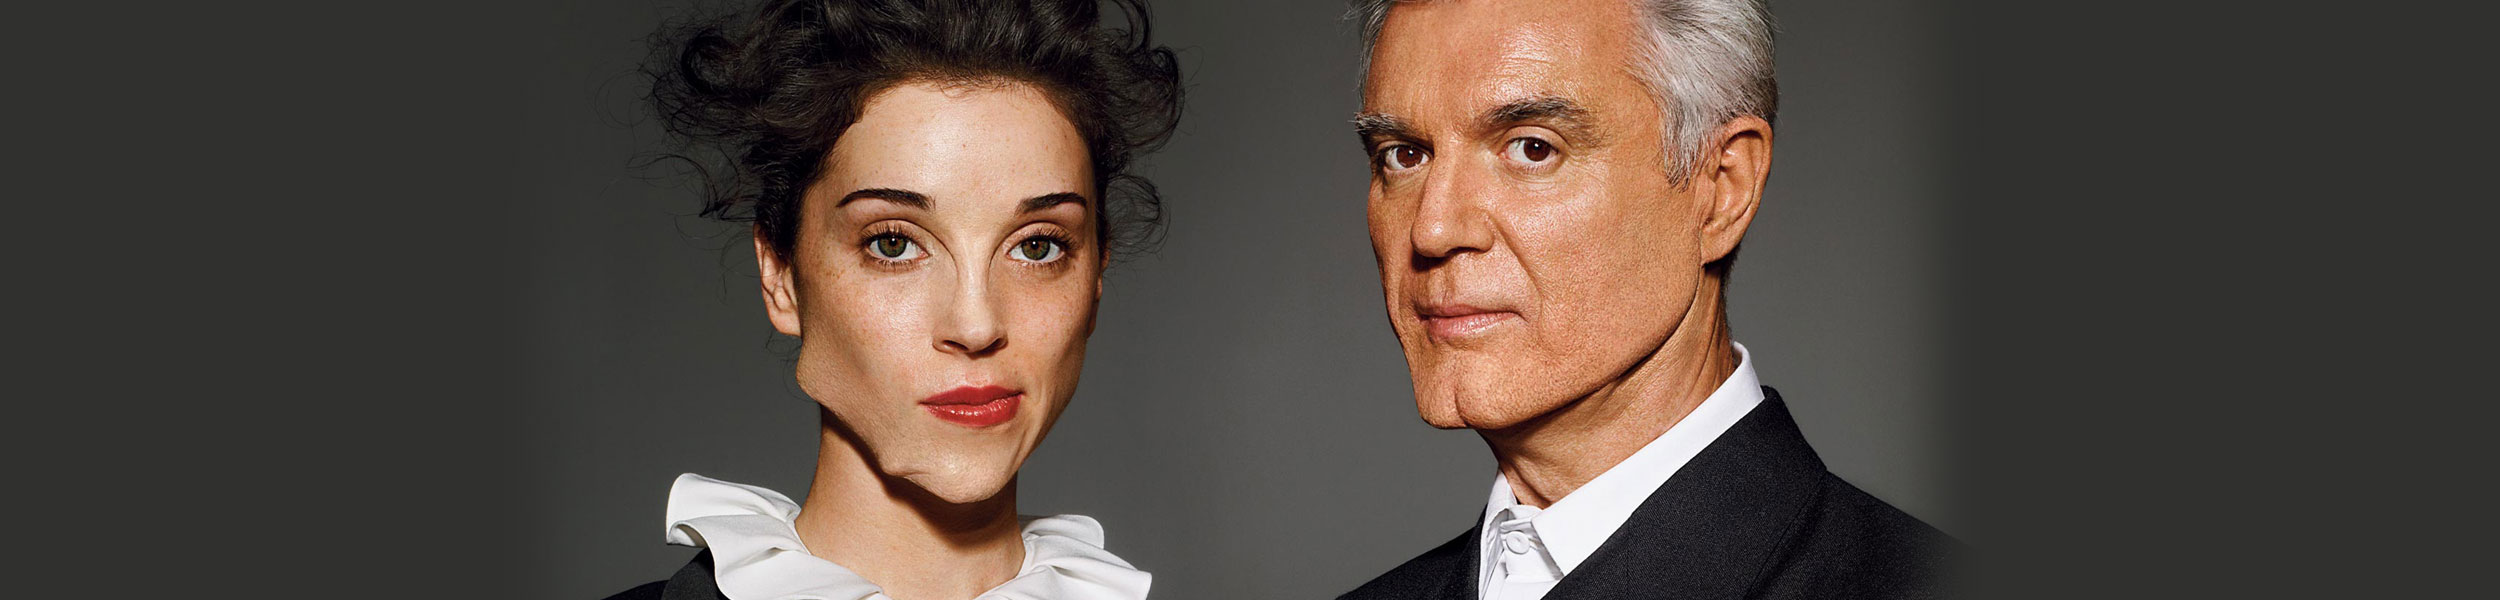 David Byrne & St. Vincent - David Byrne & St. Vincent Confirm European Tour